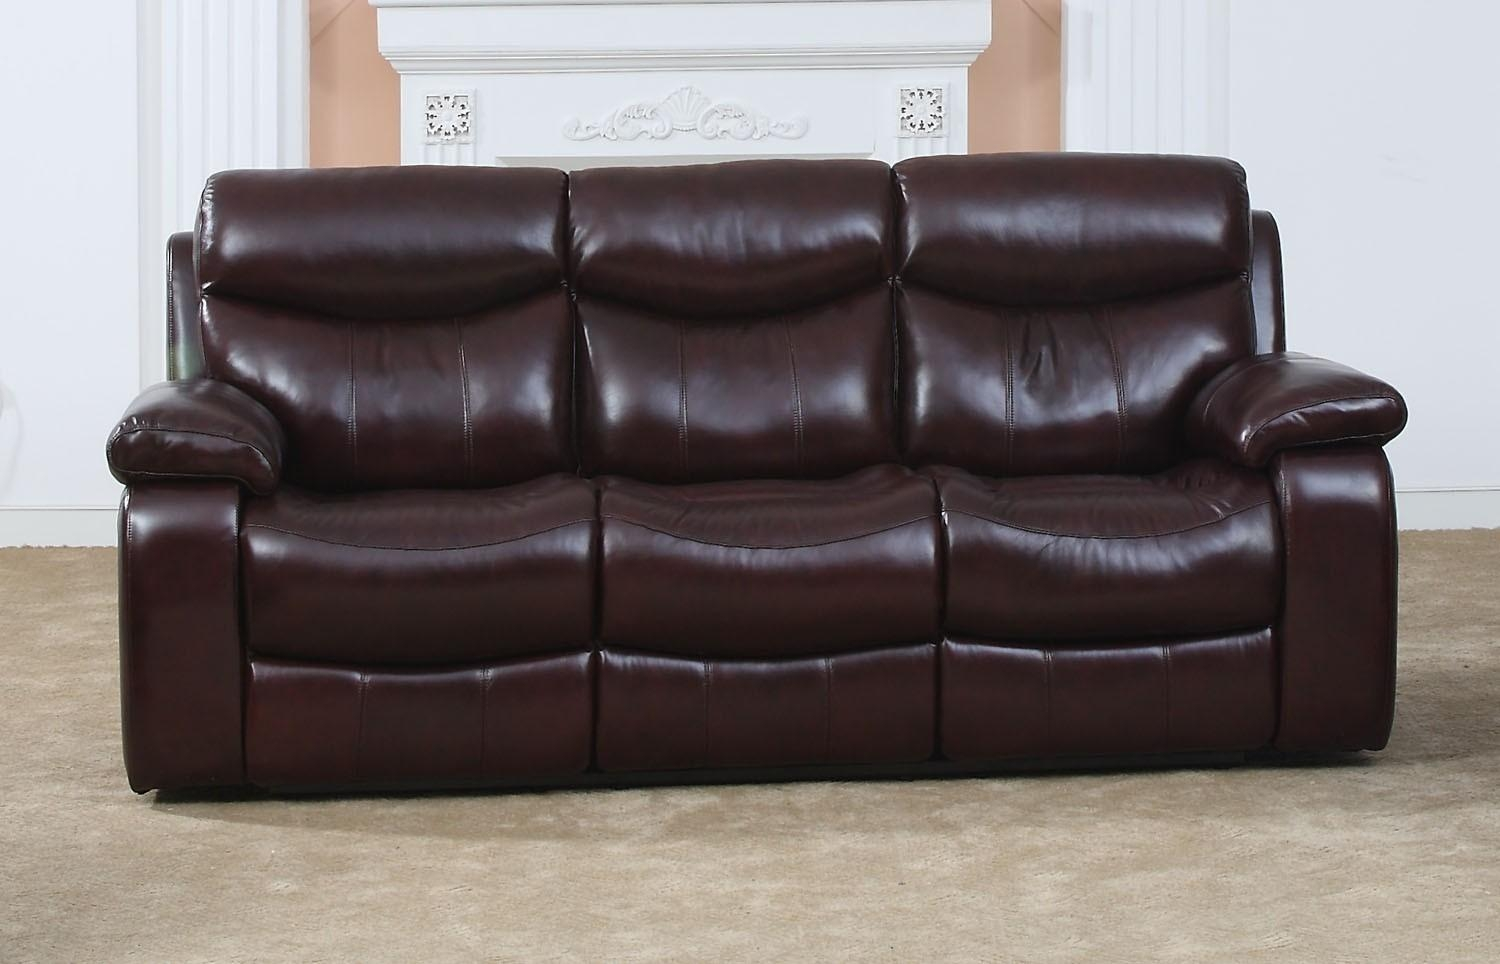 Sofa : Leather Sofas Orange County Excellent Home Design Pertaining To Sofas Orange County (Image 10 of 20)